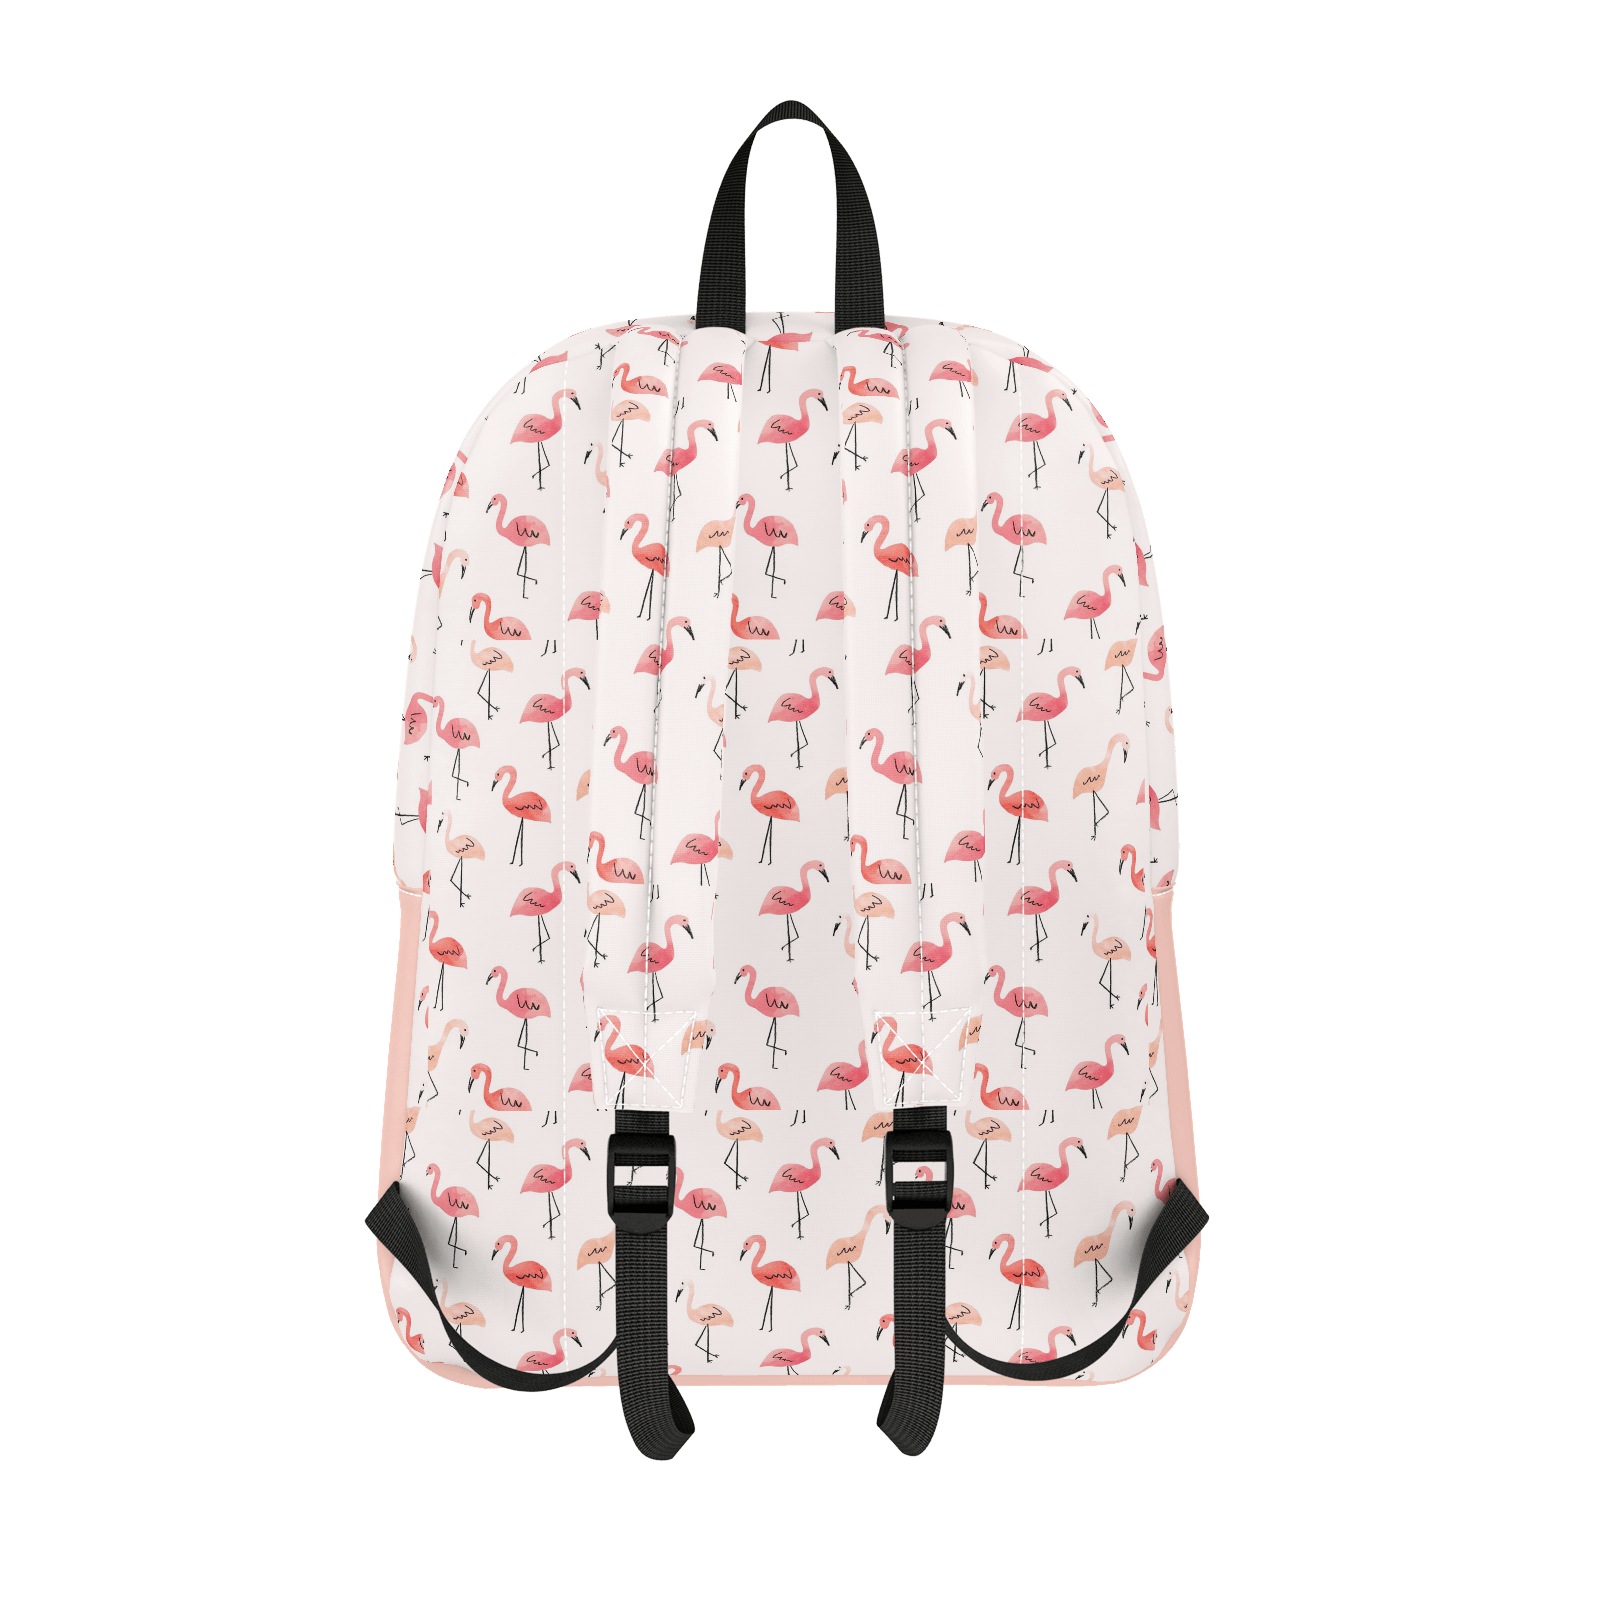 Flamingo Backpack